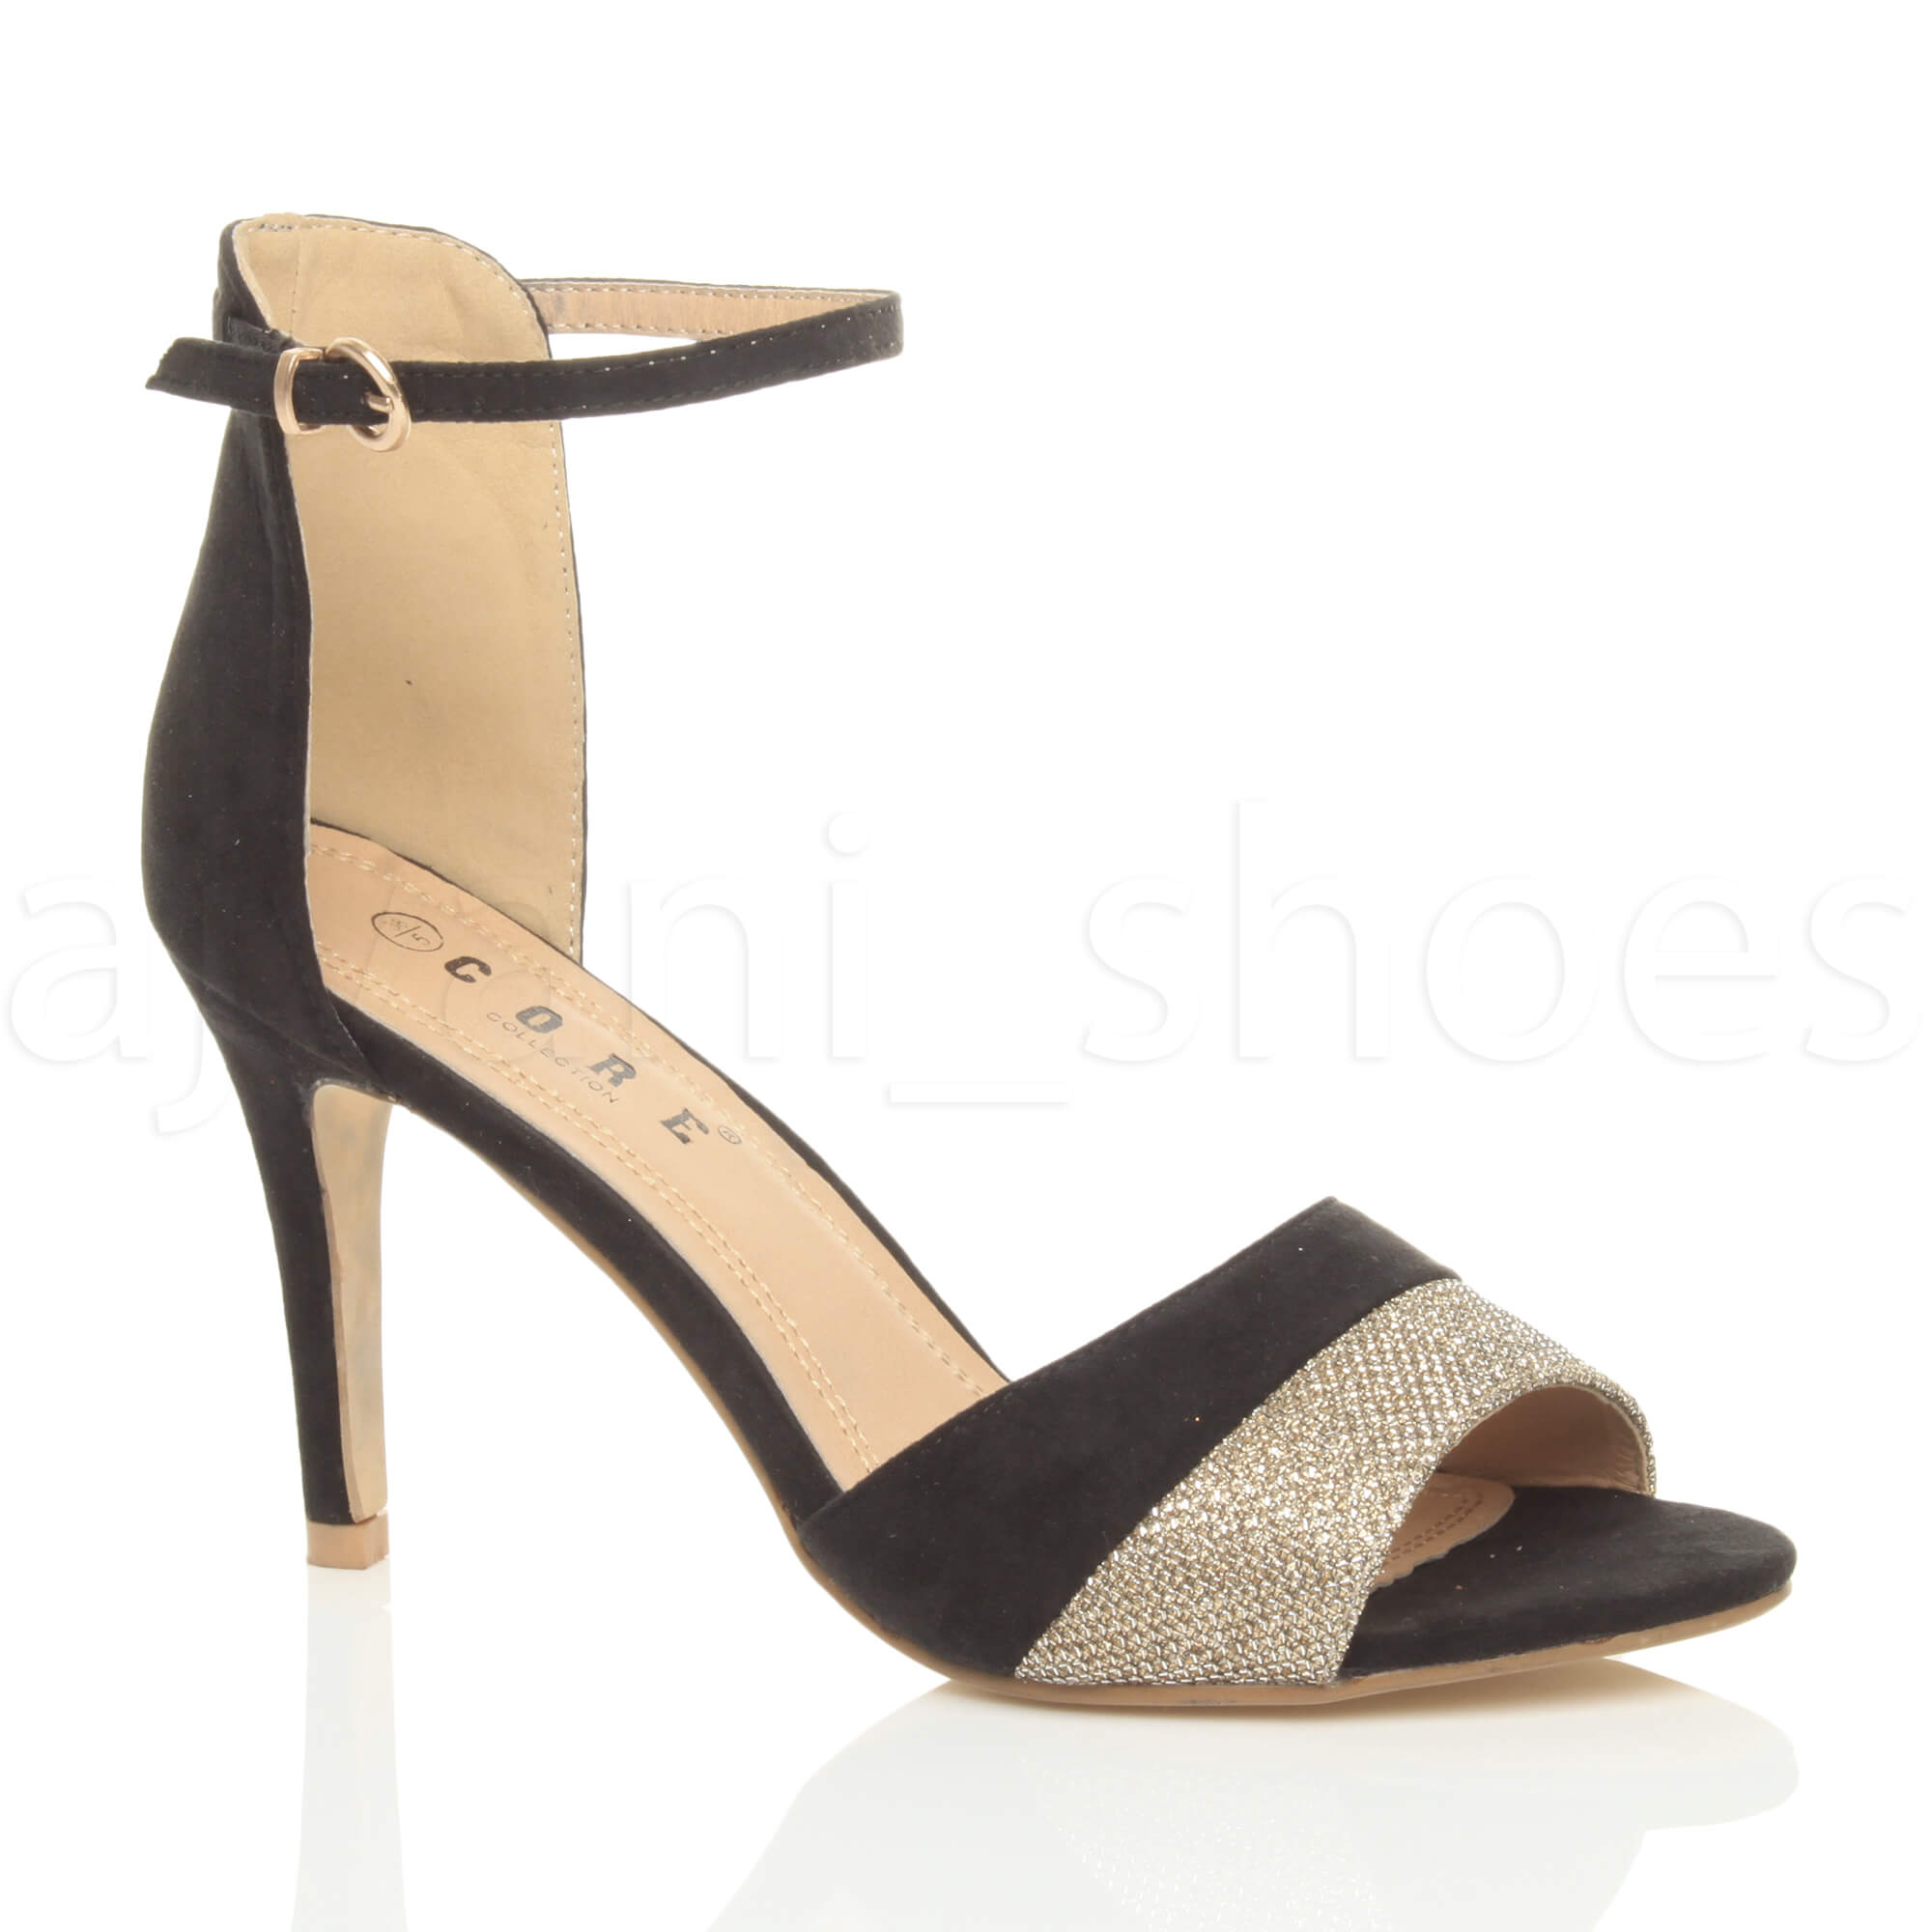 7dac53834ab Womens Ladies Mid High Heel Contrast Two Tone Ankle Cuff Sandals ...